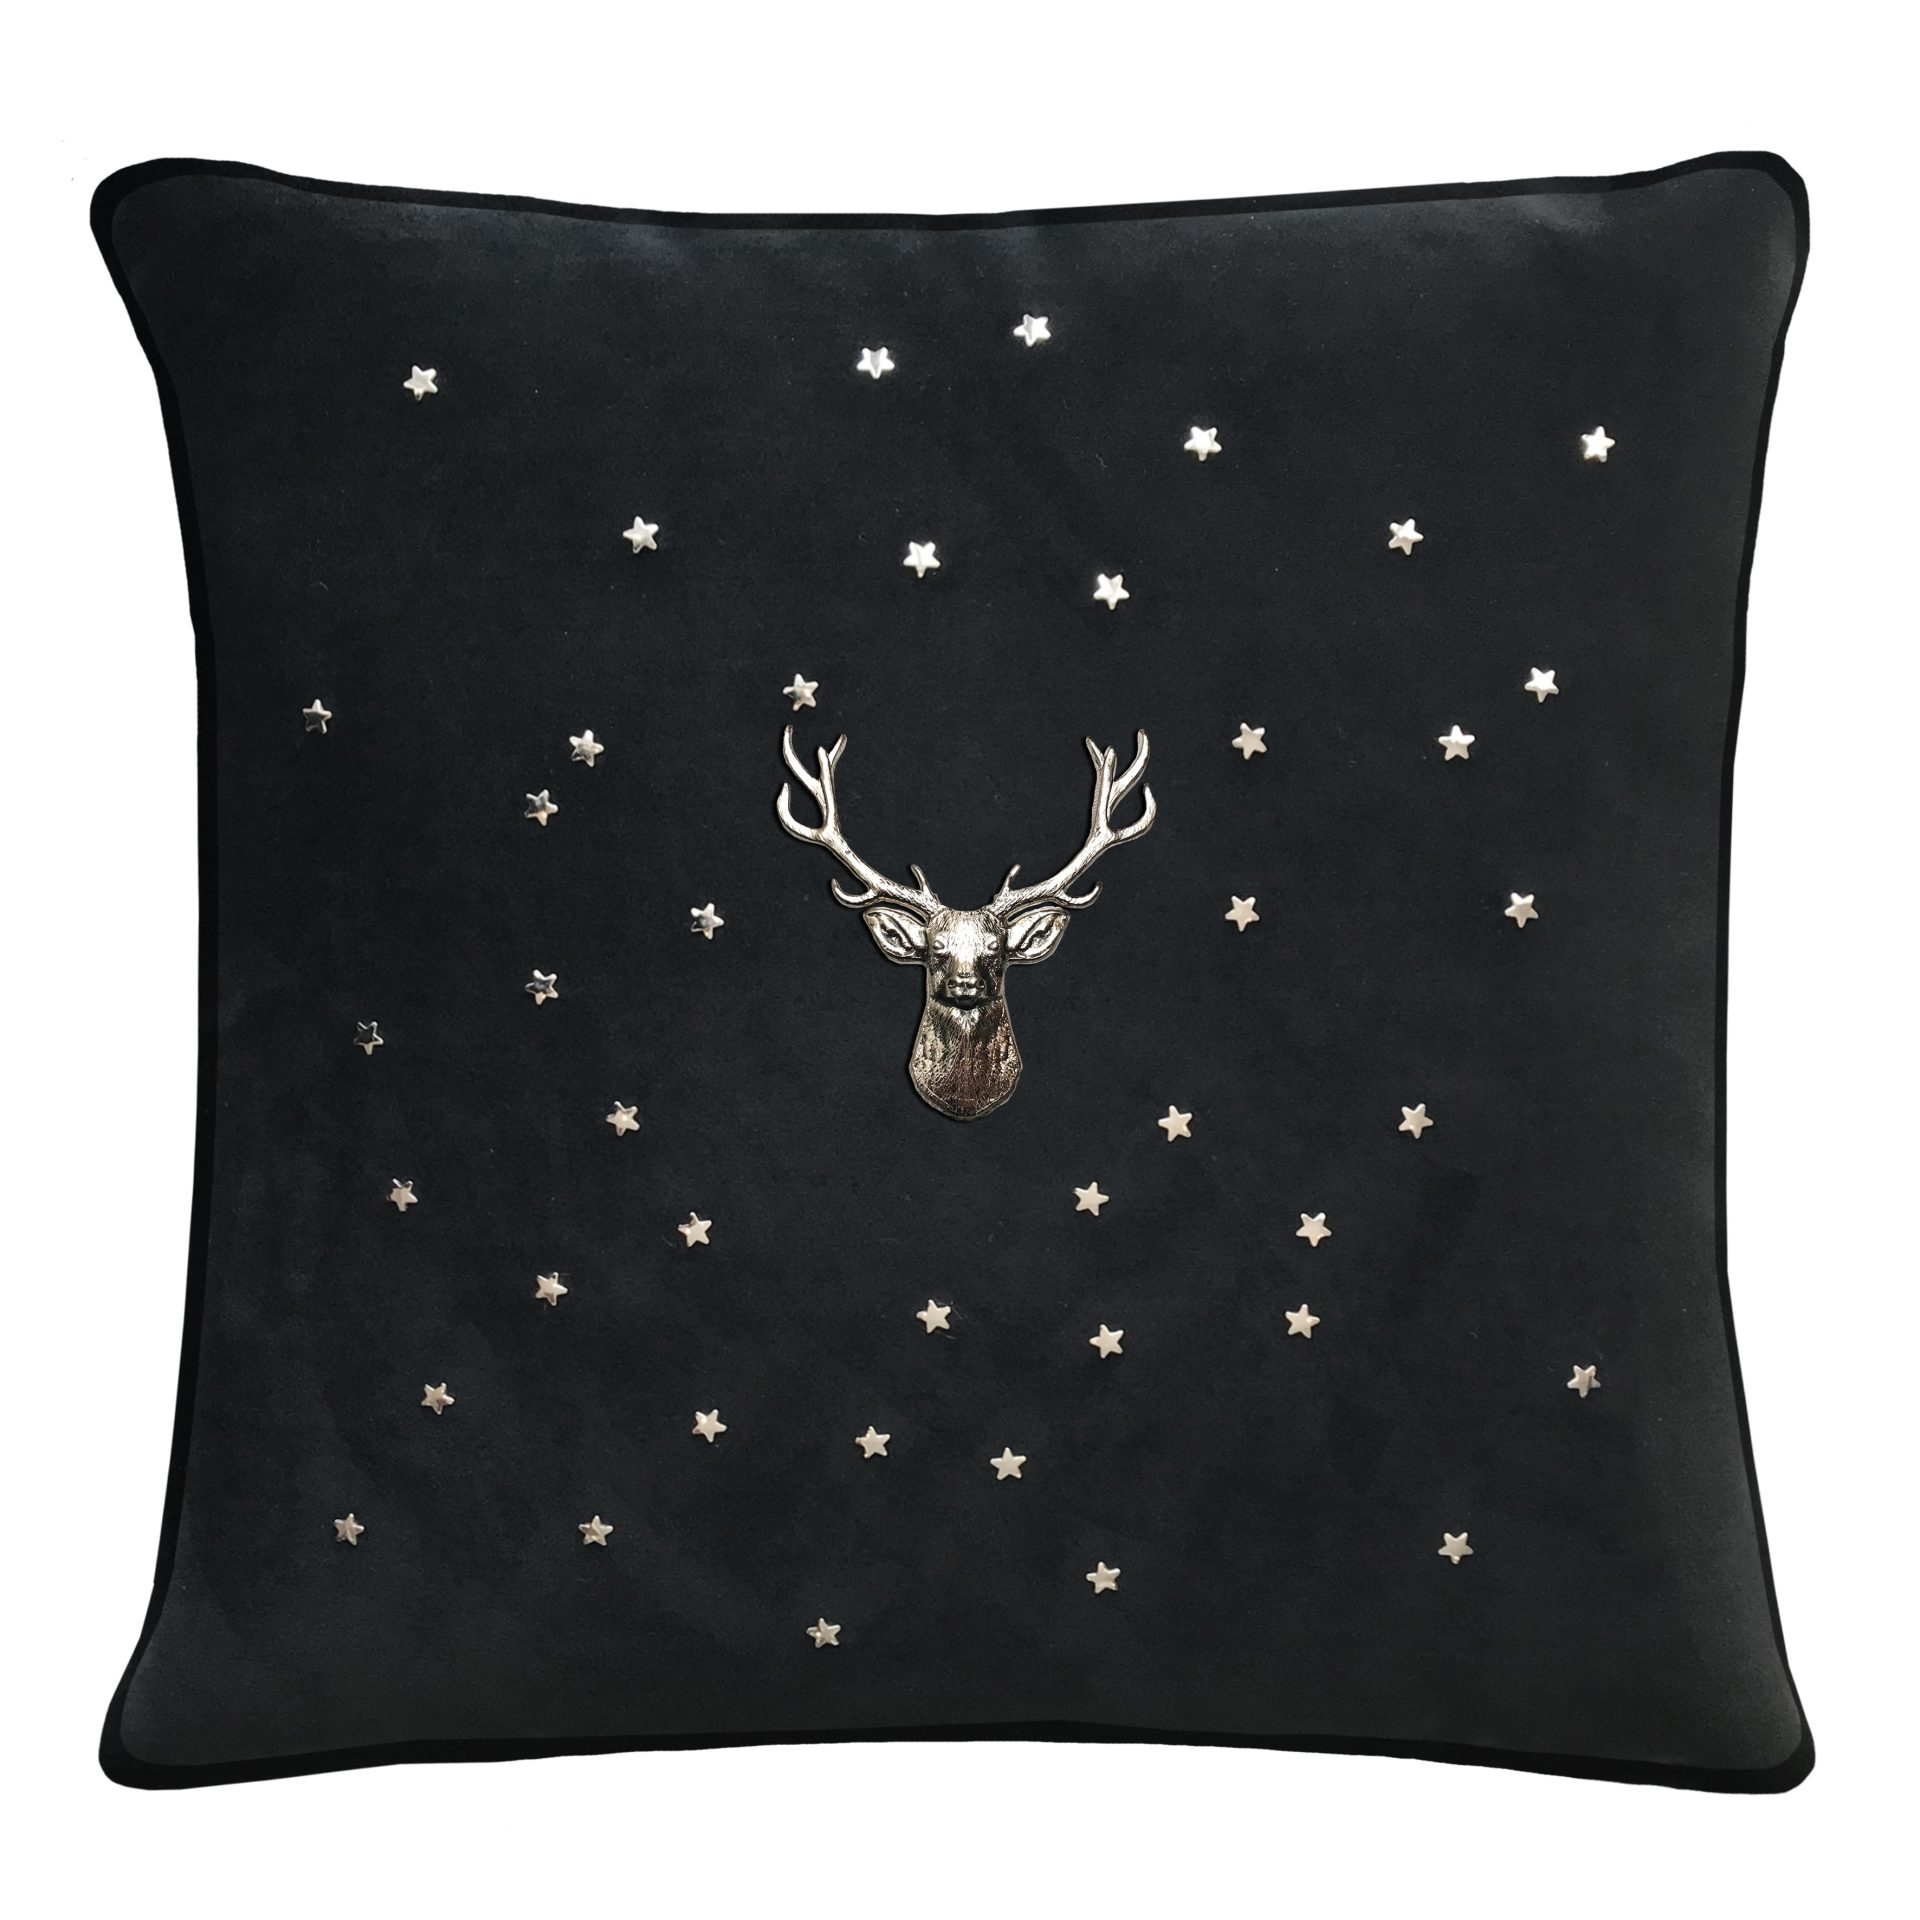 Black throw pillow with silver stag and stars.